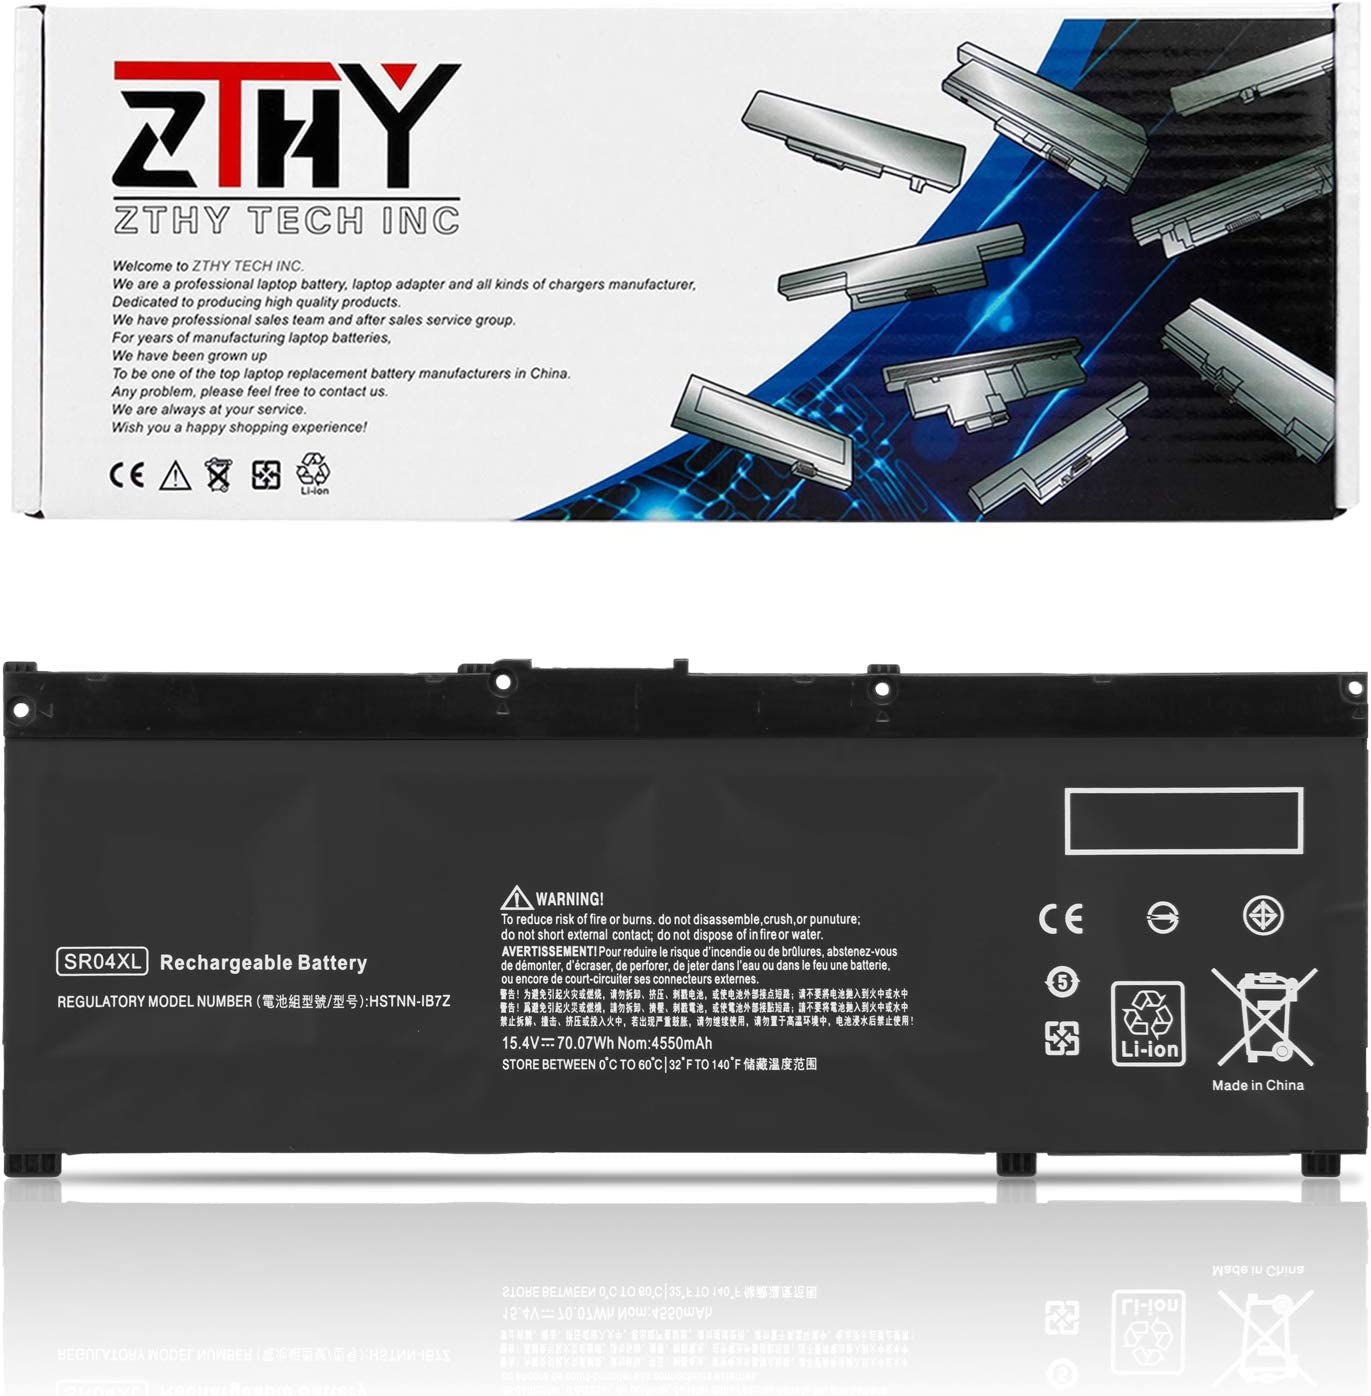 ZTHY SR04XL Laptop Battery for HP Pavilion Power 15-CB000 CB000NG CB045WM CB052TX 15T-CB2000 Omen 15-CE000 CE015DX CE002NG CE011DX DC0000 DC0030NR DC1054NR Gaming 15-CX000 917724-855 15.4V 70.07Wh